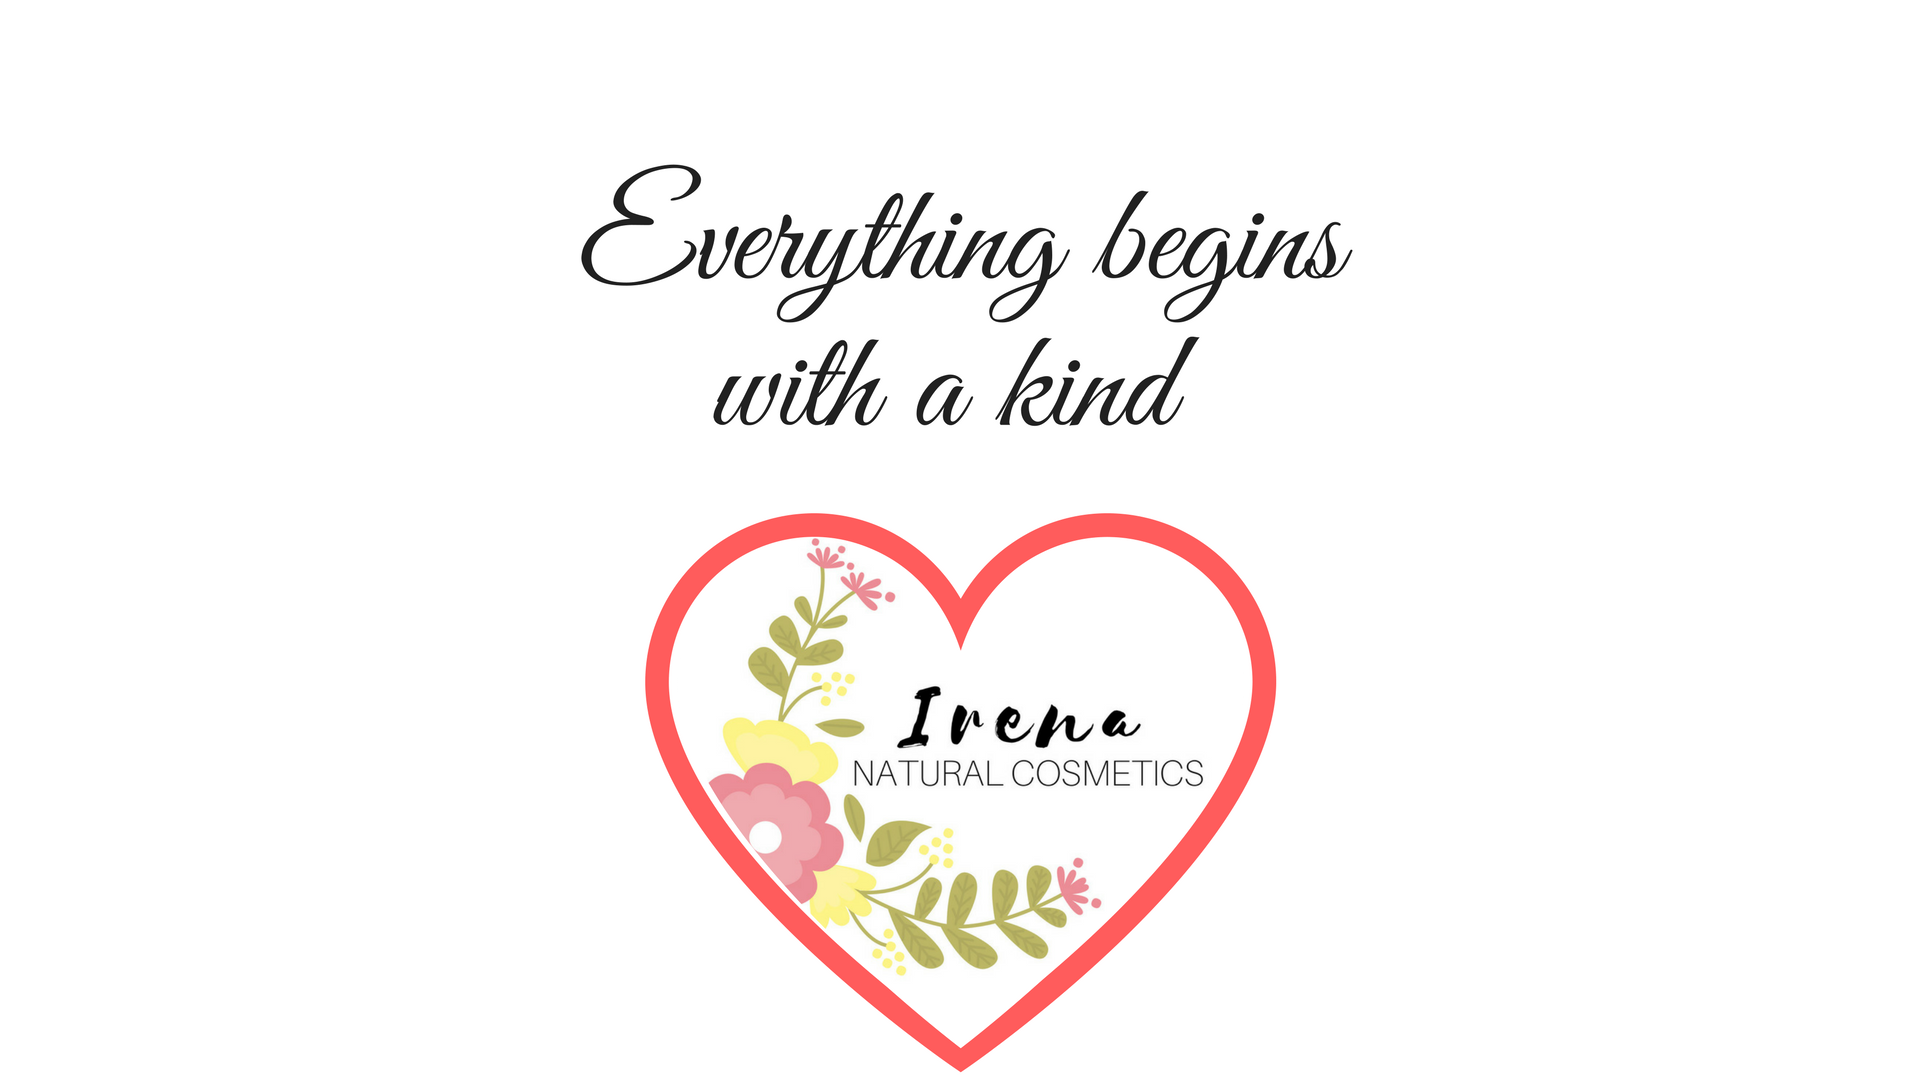 Everything begins with a kind (2)